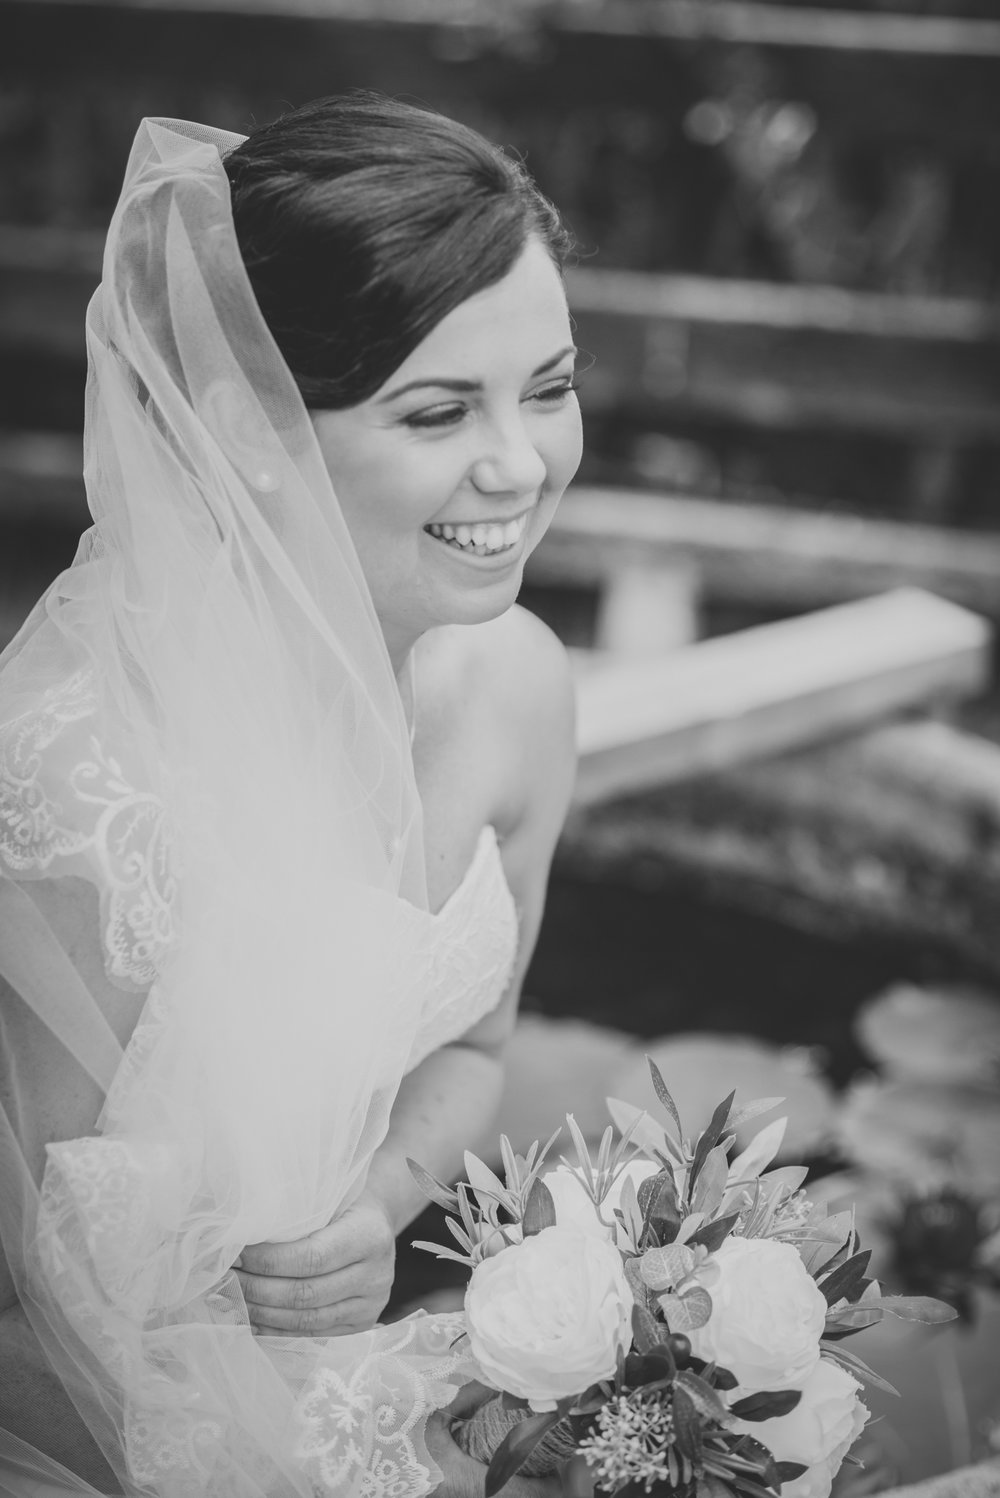 grace-carl-dargaville-wedding-modern-elegant-21